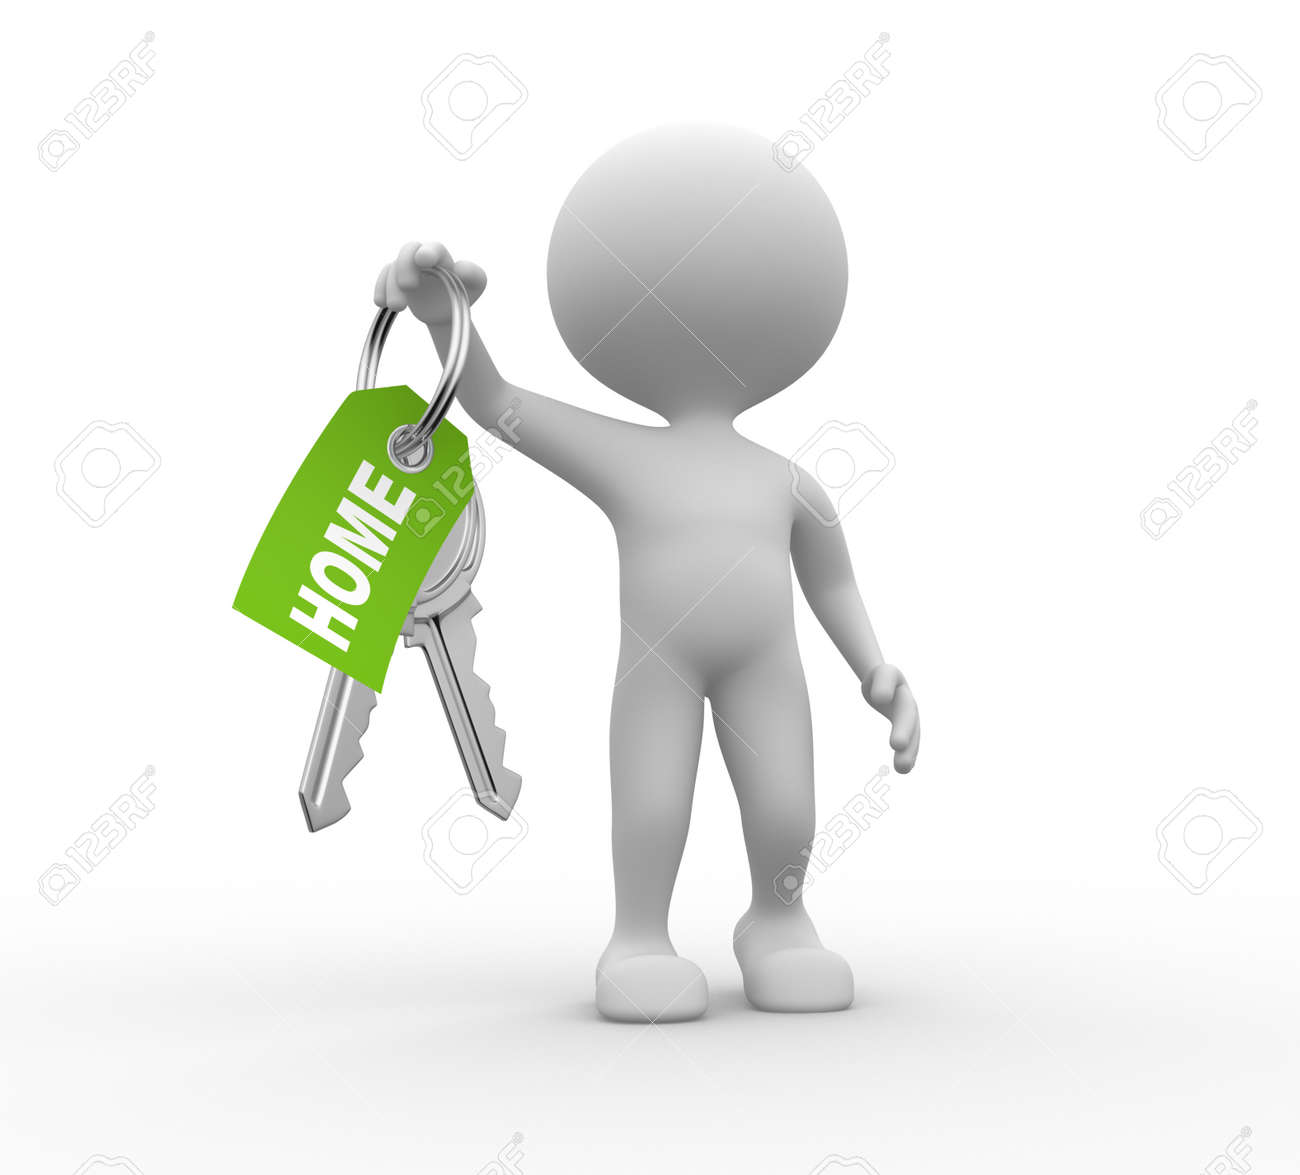 3d people - men, person with a key. Concept of give. Stock Photo - 25927774